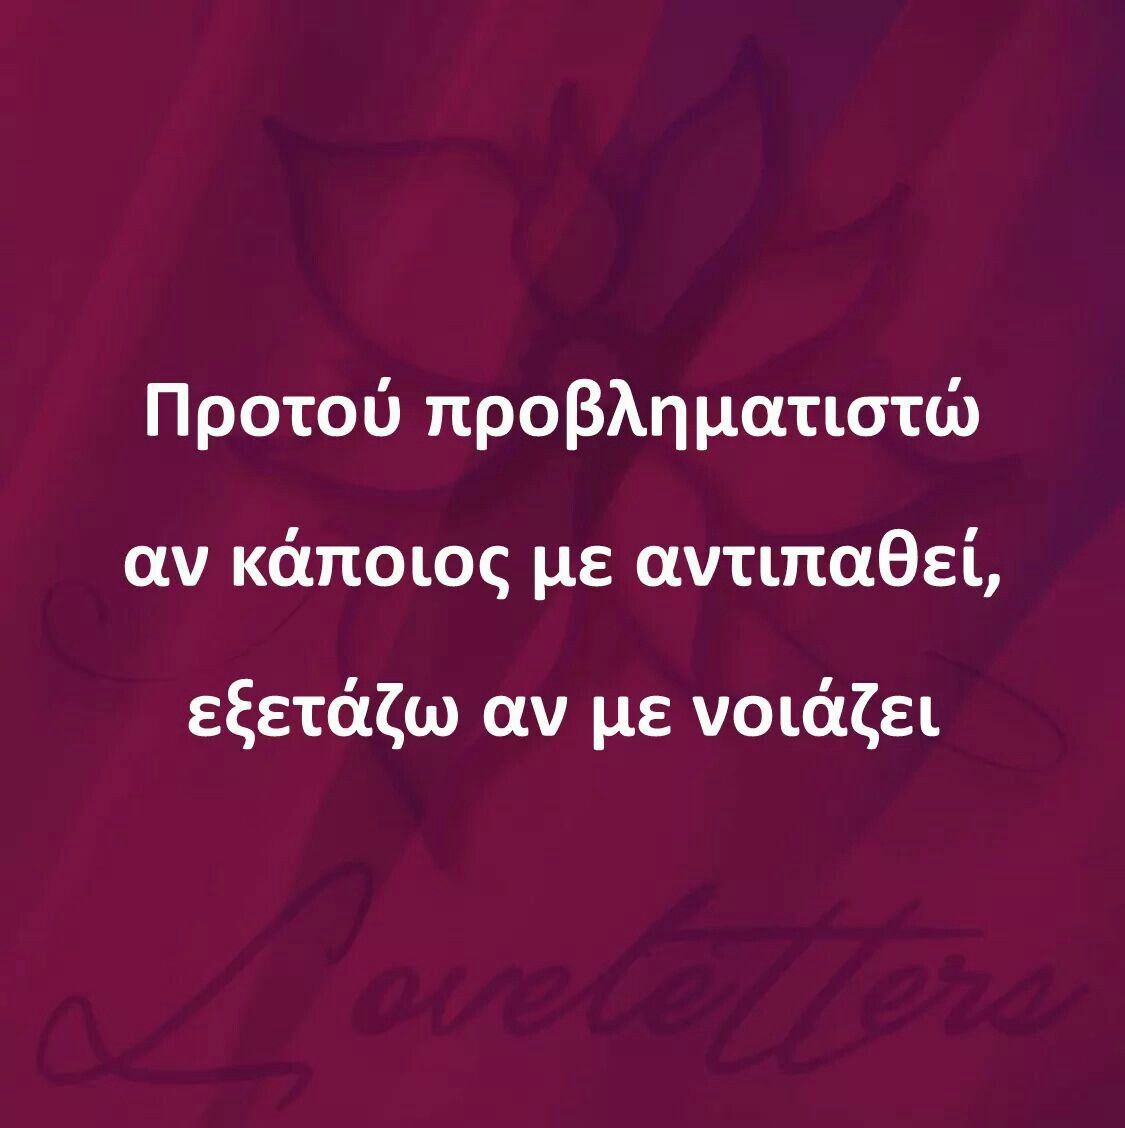 Pin By Soula Wood On Logia Kai Skepseis Greek Quotes Wisdom Quotes Meaningful Quotes